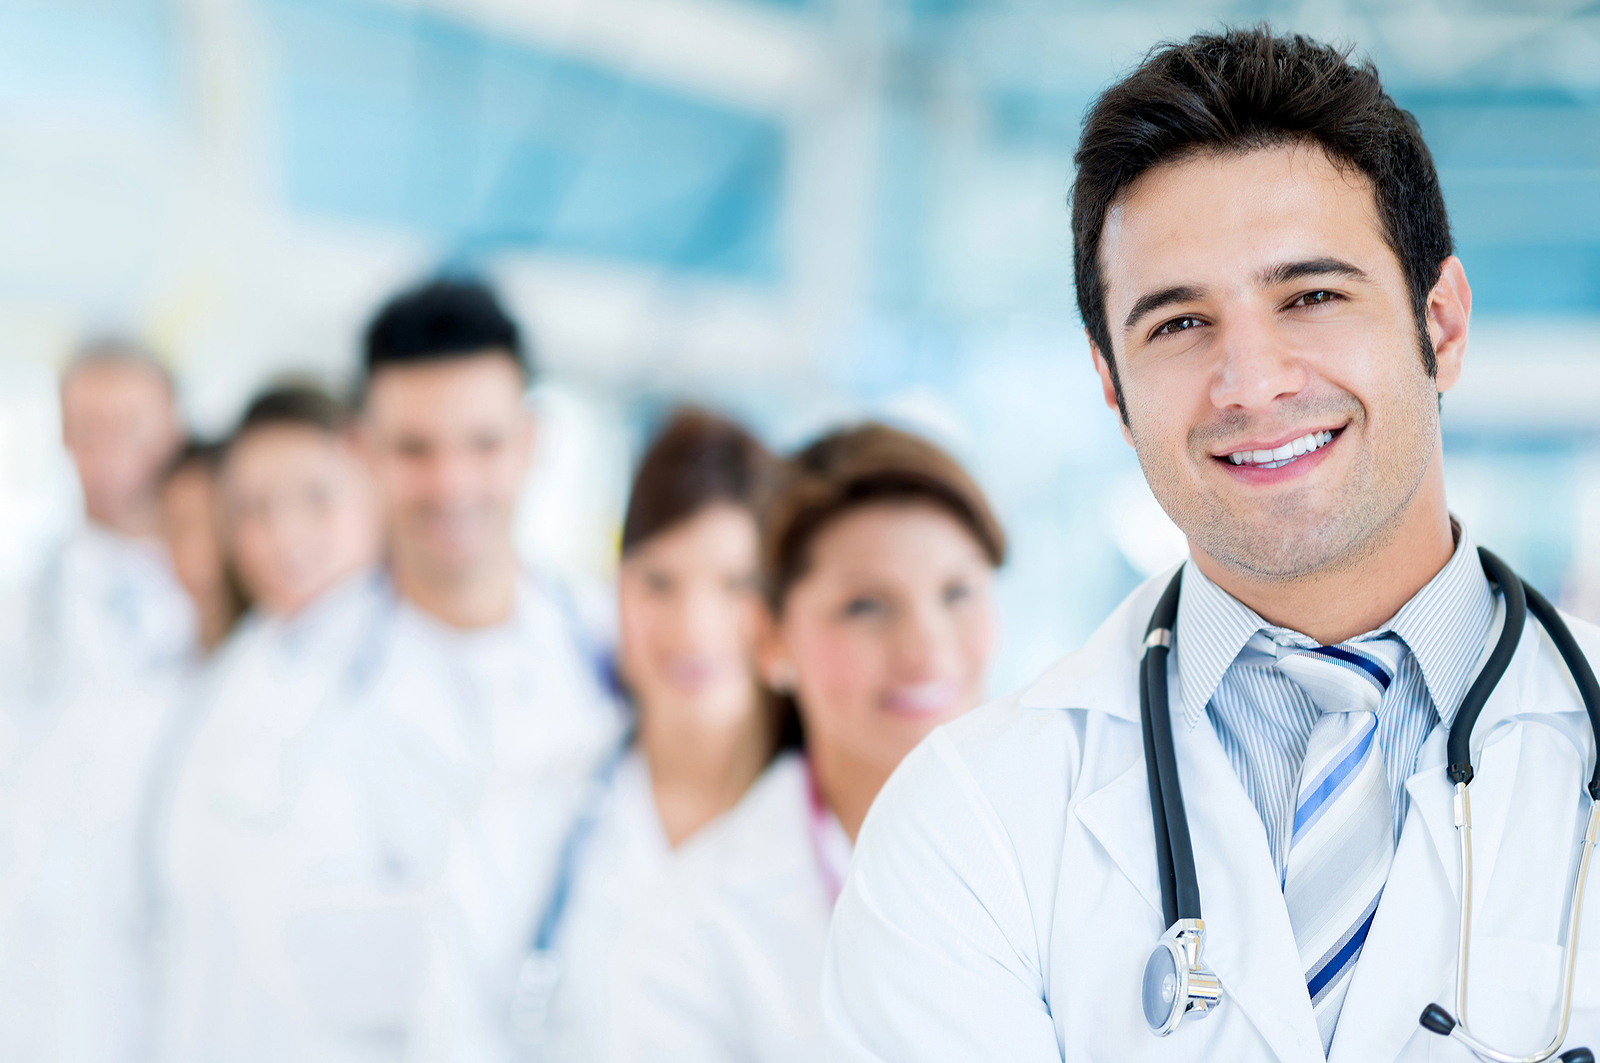 bigstock-Male-doctor-at-the-hospital-wi-50999915